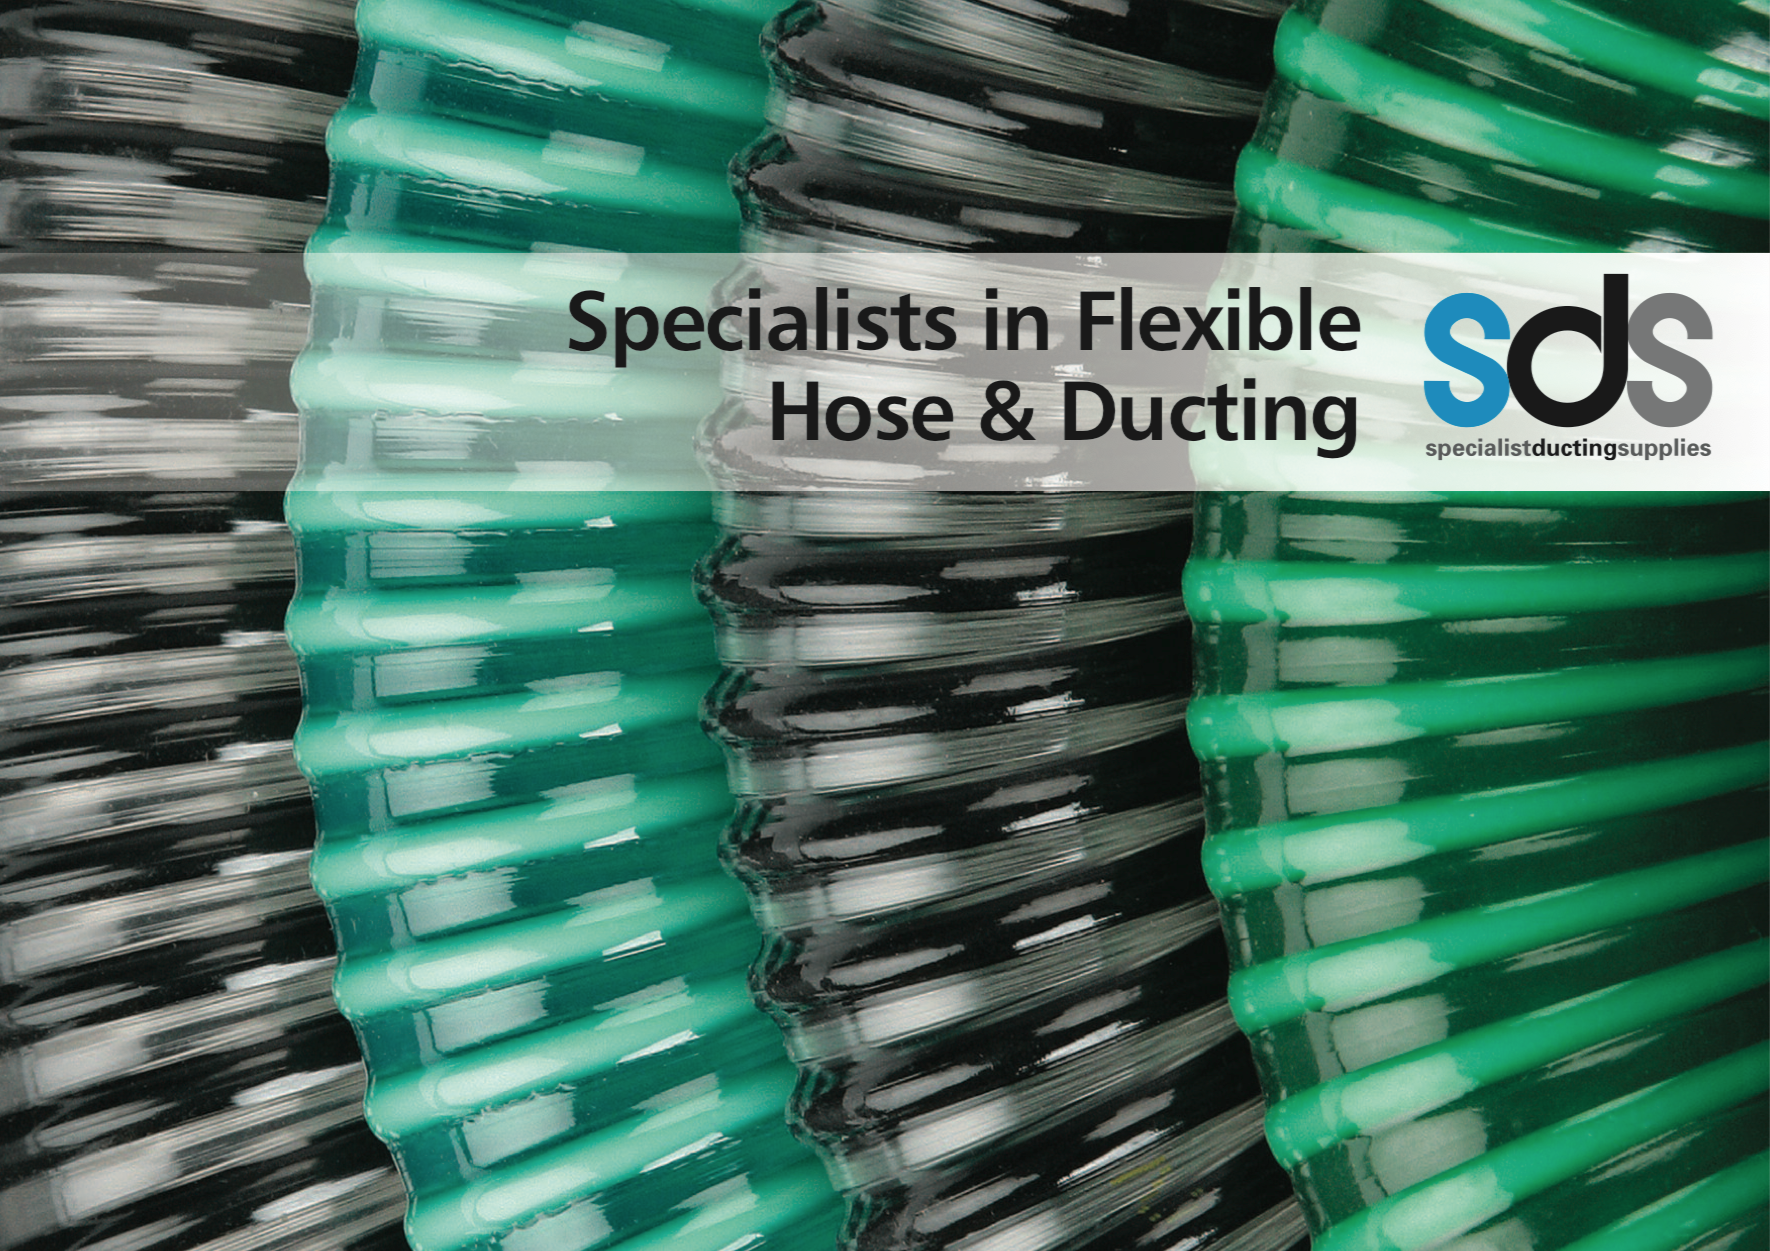 NEW Flexible Hose & Ducting Brochure Launched